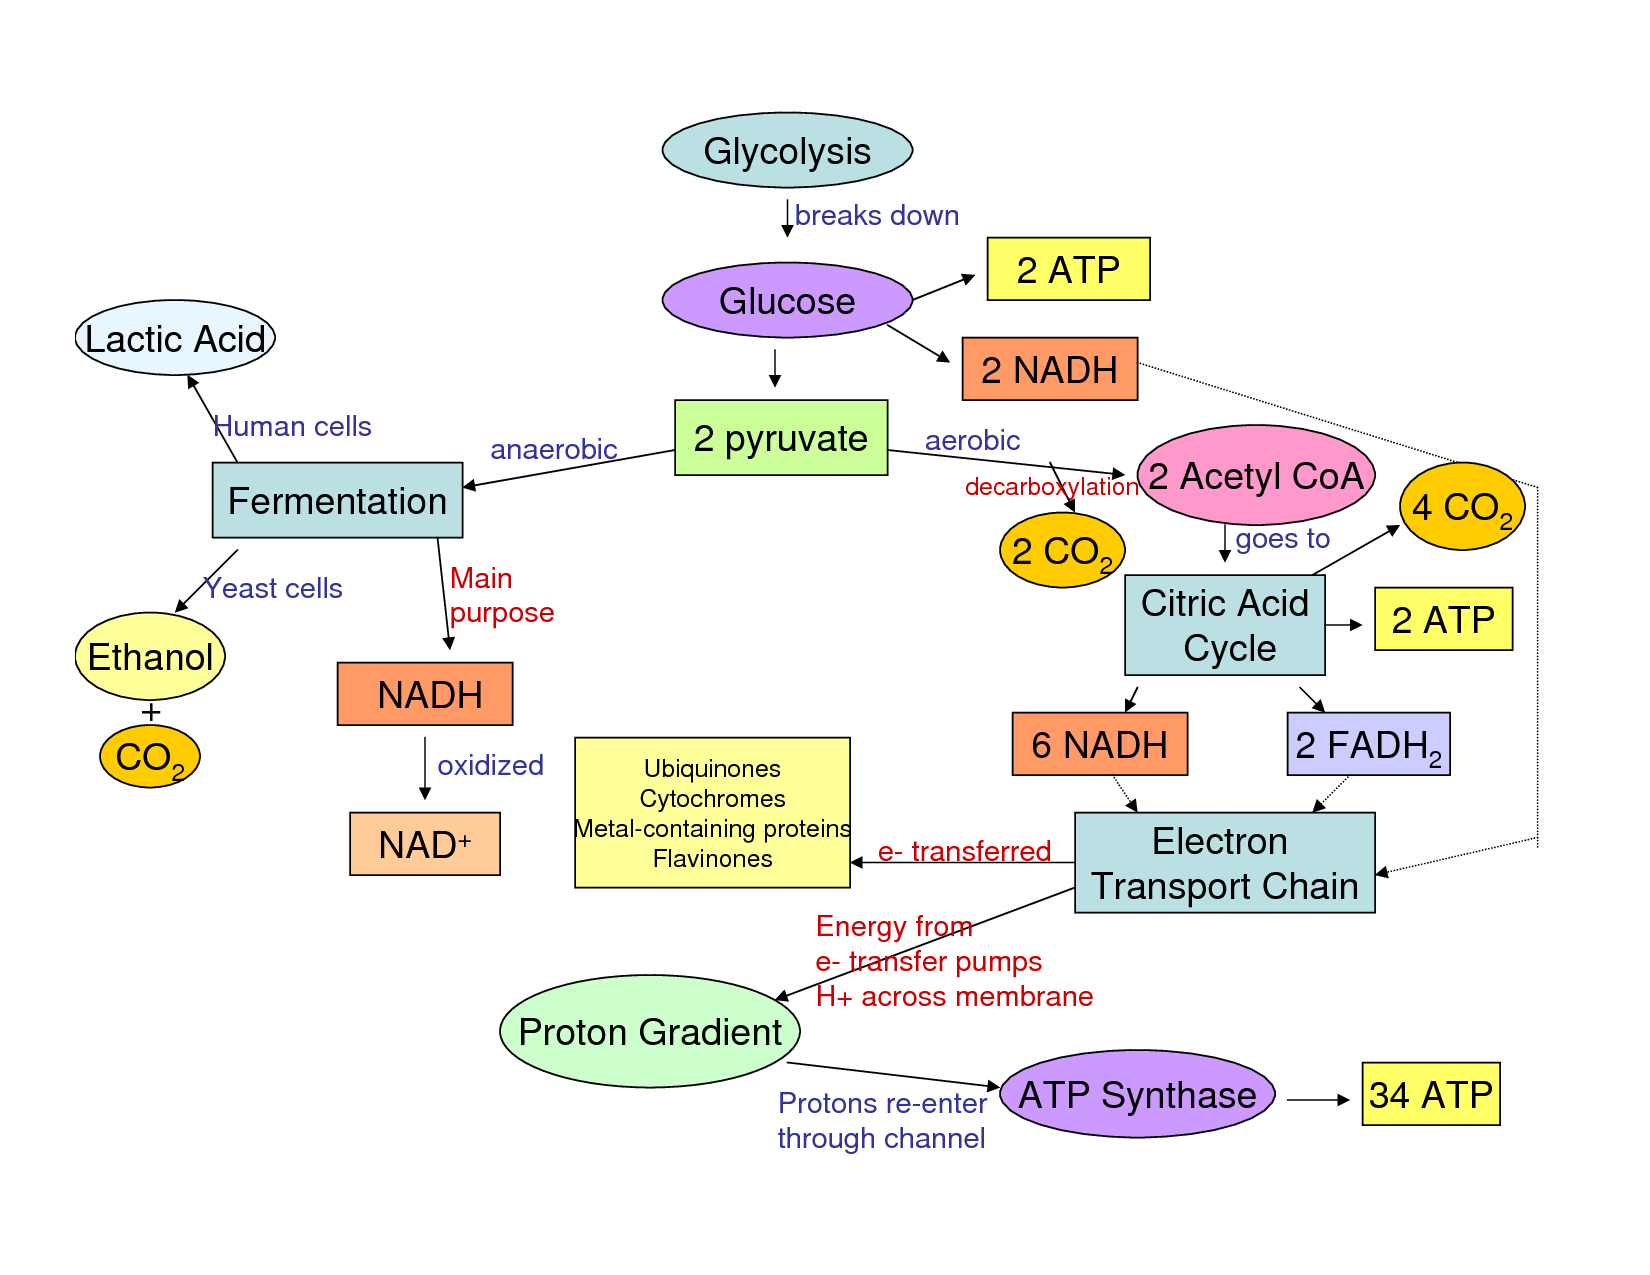 cellular respiration glycolysis and flow chart | the stuff of life